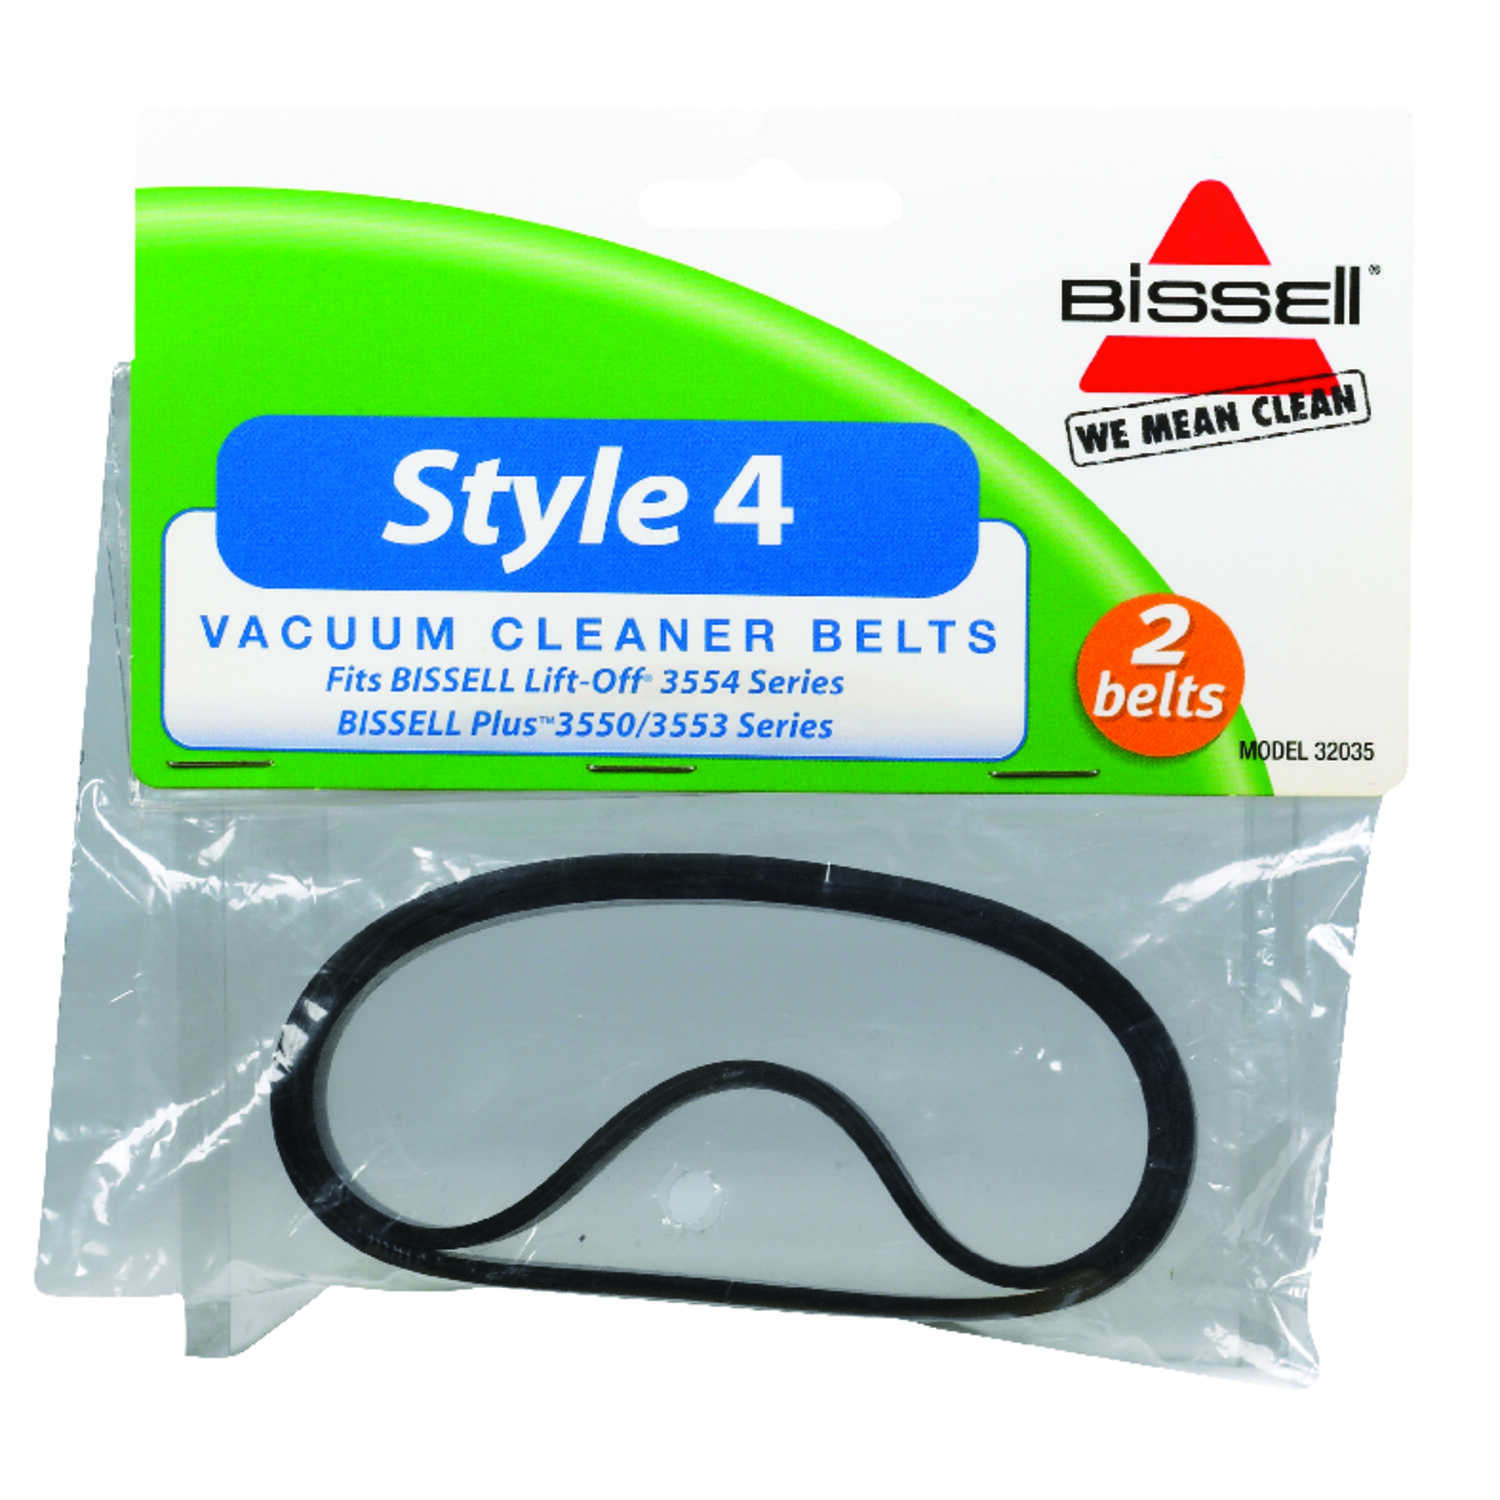 Bissell Vacuum Belt Style 4 For Use With Bissell Carded 2 / Pack Bissell